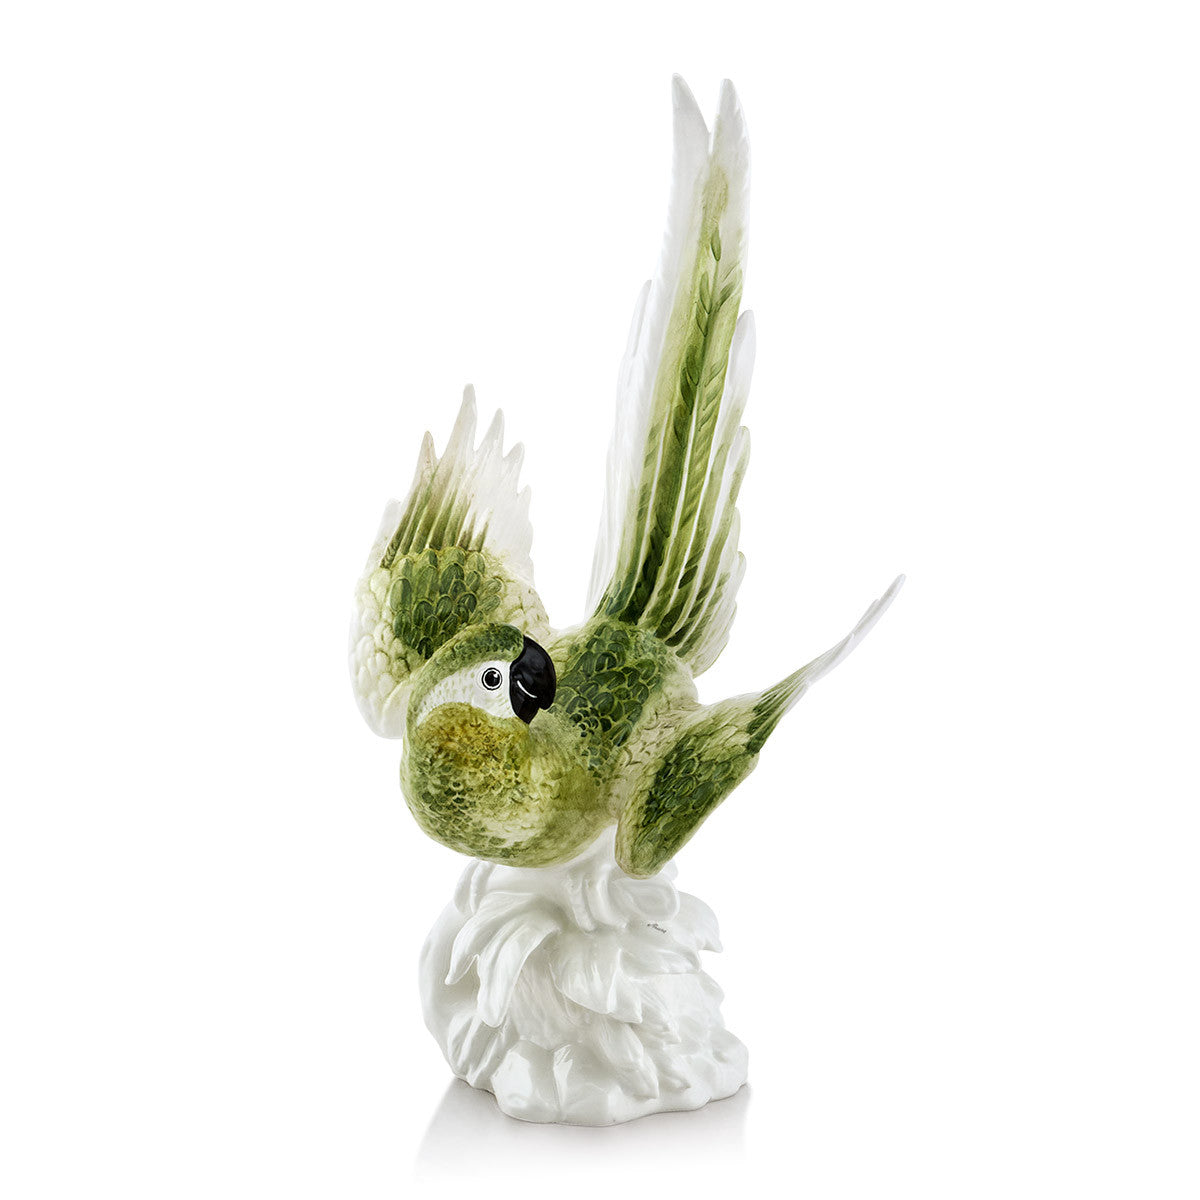 parrot ceramic porcelain finished in green natural color handmade in Italy